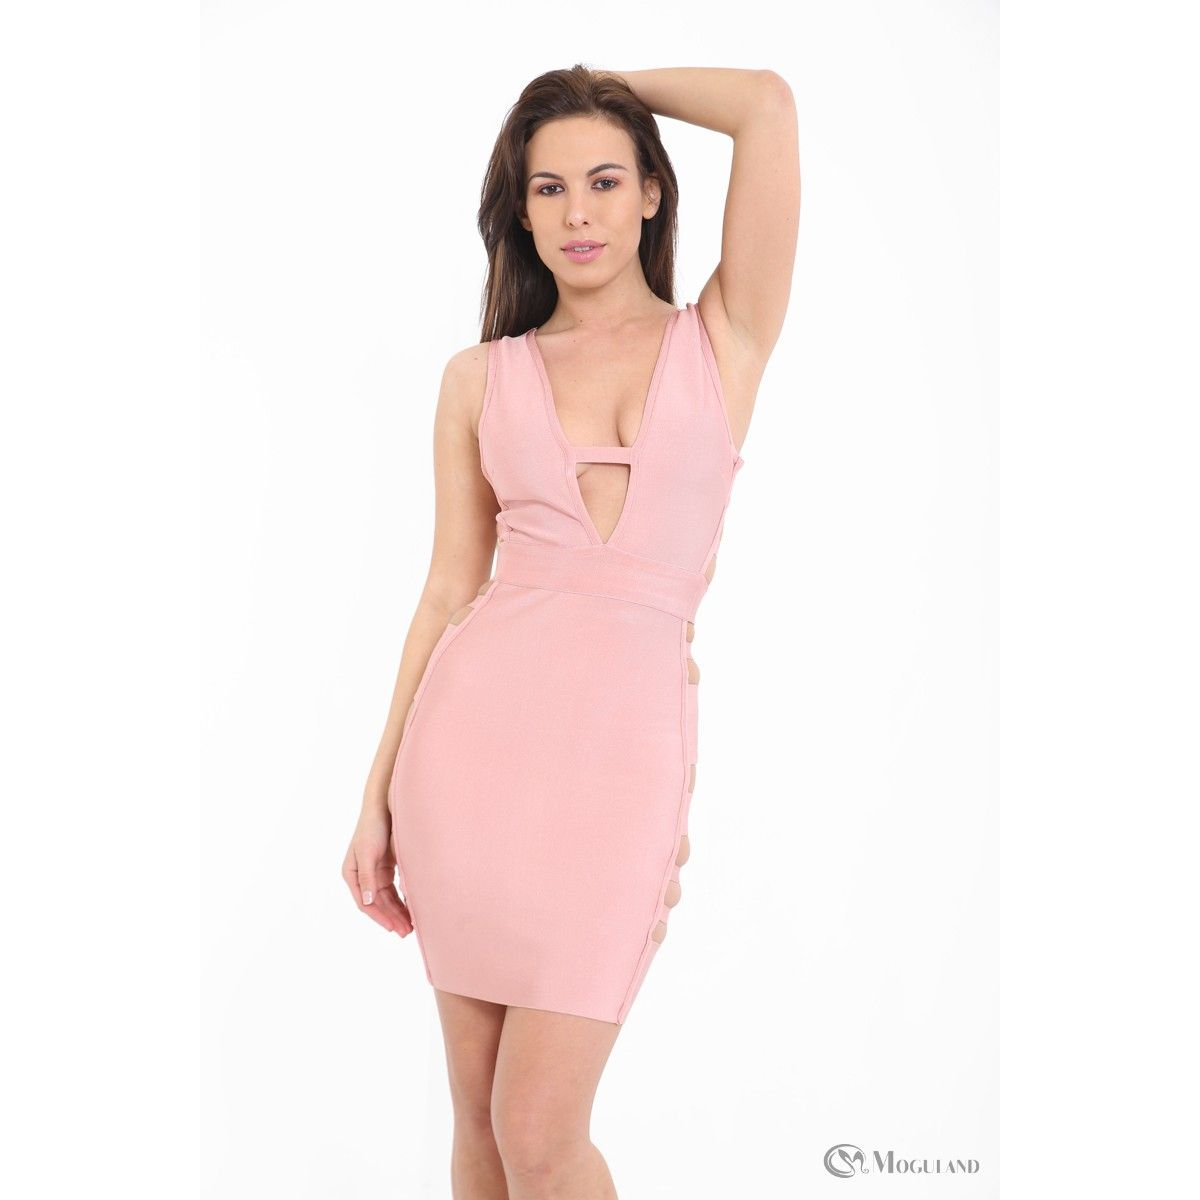 0f4cfa637a Ladies pink plunge cut out bandage dress wholesale - new in  dresses - Women s  Wholesale Clothing Supplier